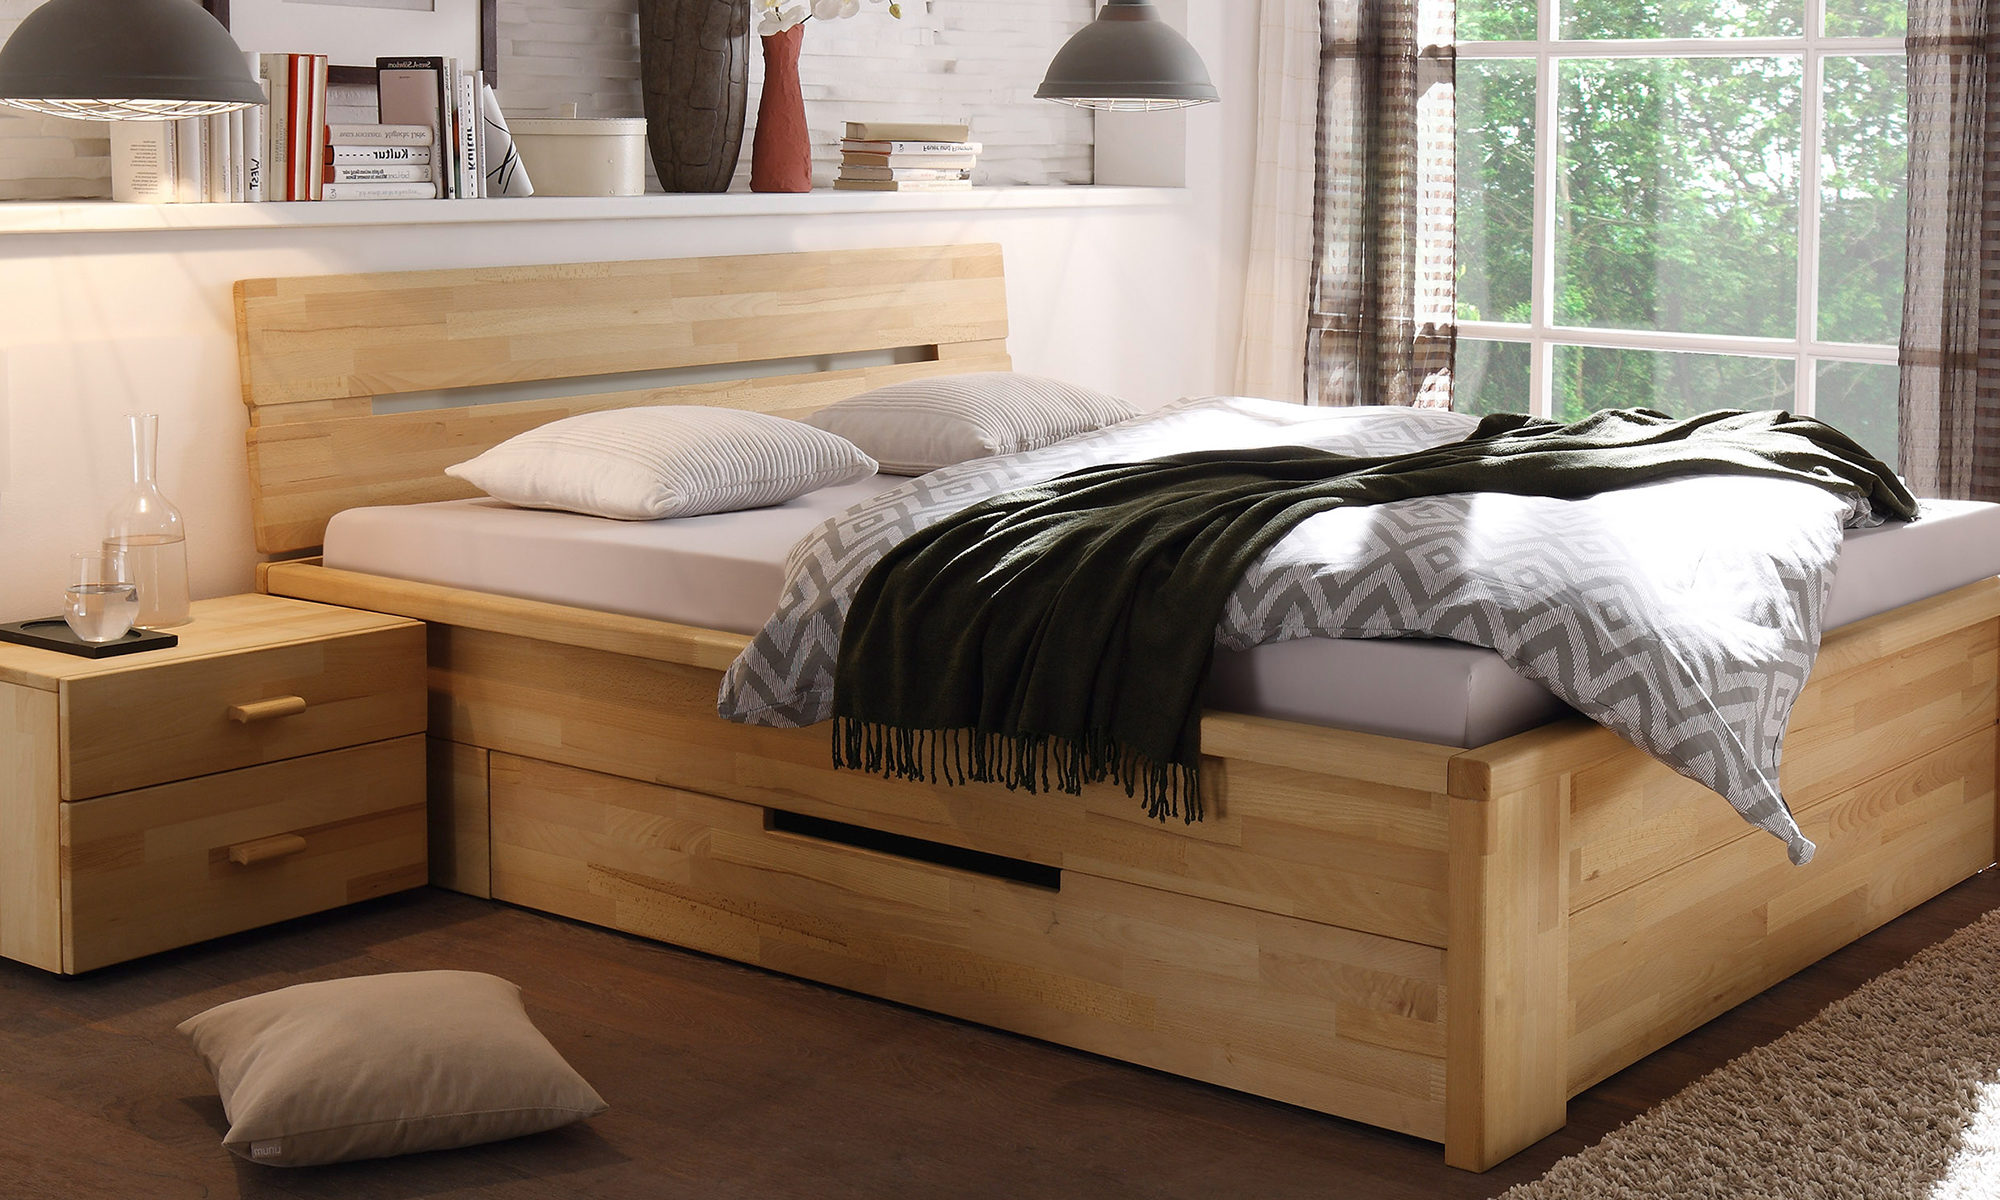 bett kaufen ikea rundes bett kaufen runde betten fr die. Black Bedroom Furniture Sets. Home Design Ideas